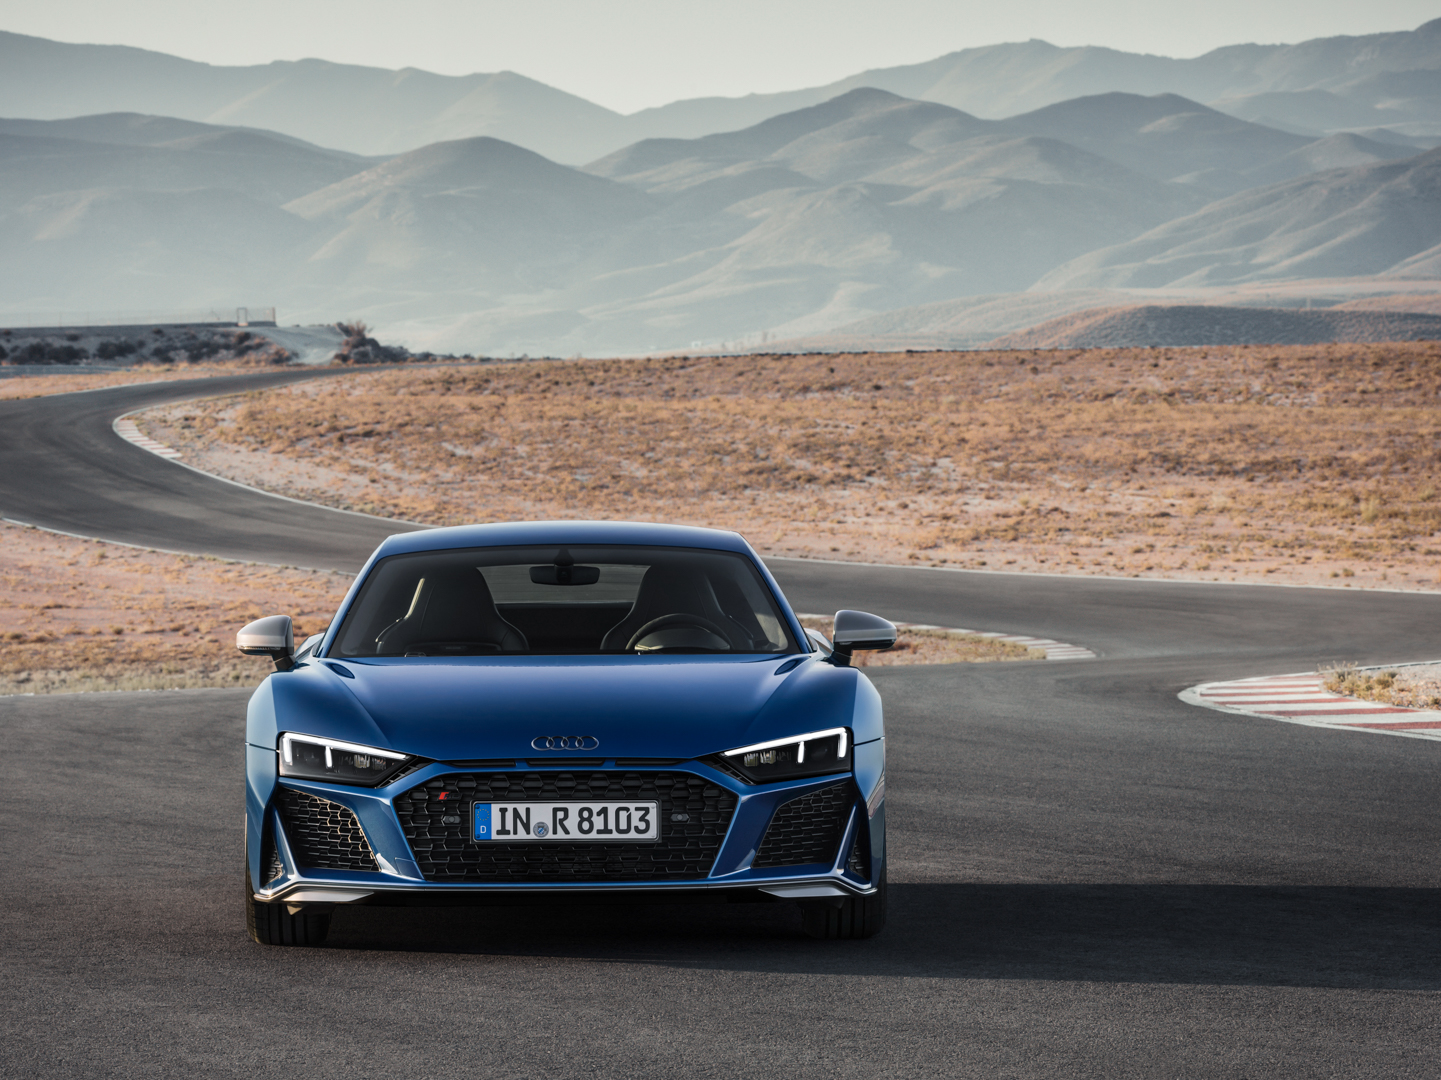 Top Gear drives the Audi R8 Facelift